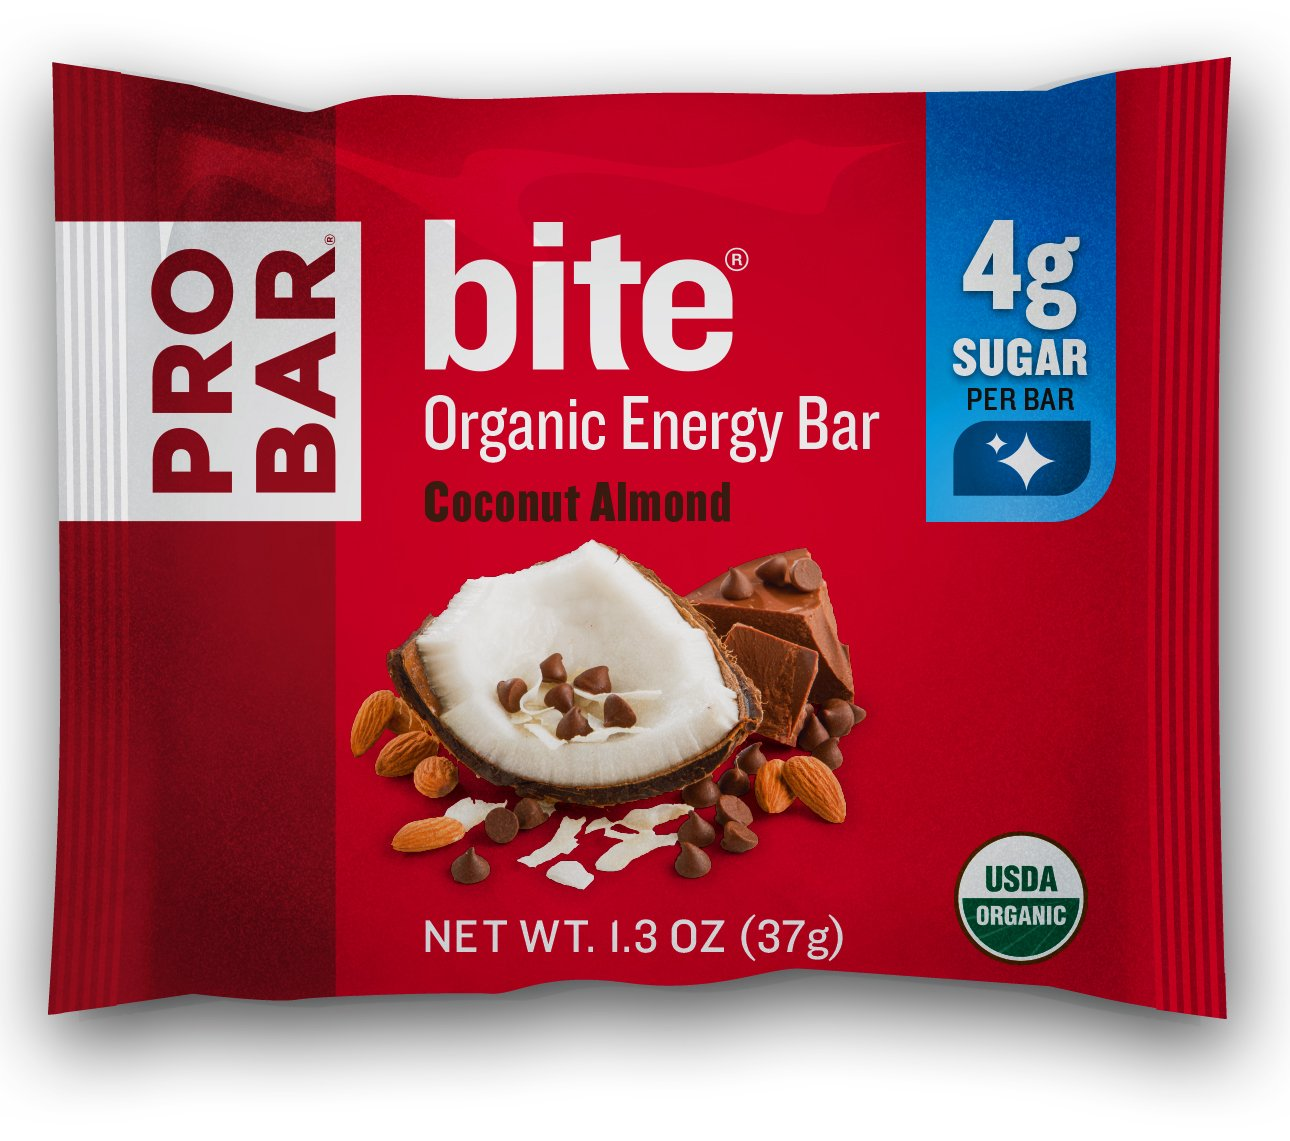 PROBAR - bite Organic Energy Bar - Coconut Almond - USDA Organic, Gluten-Free, Non-GMO Project Verified, Plant-Based Whole Food Ingredients, 6g Protein, 4g Fiber - Pack of 12 by Probar